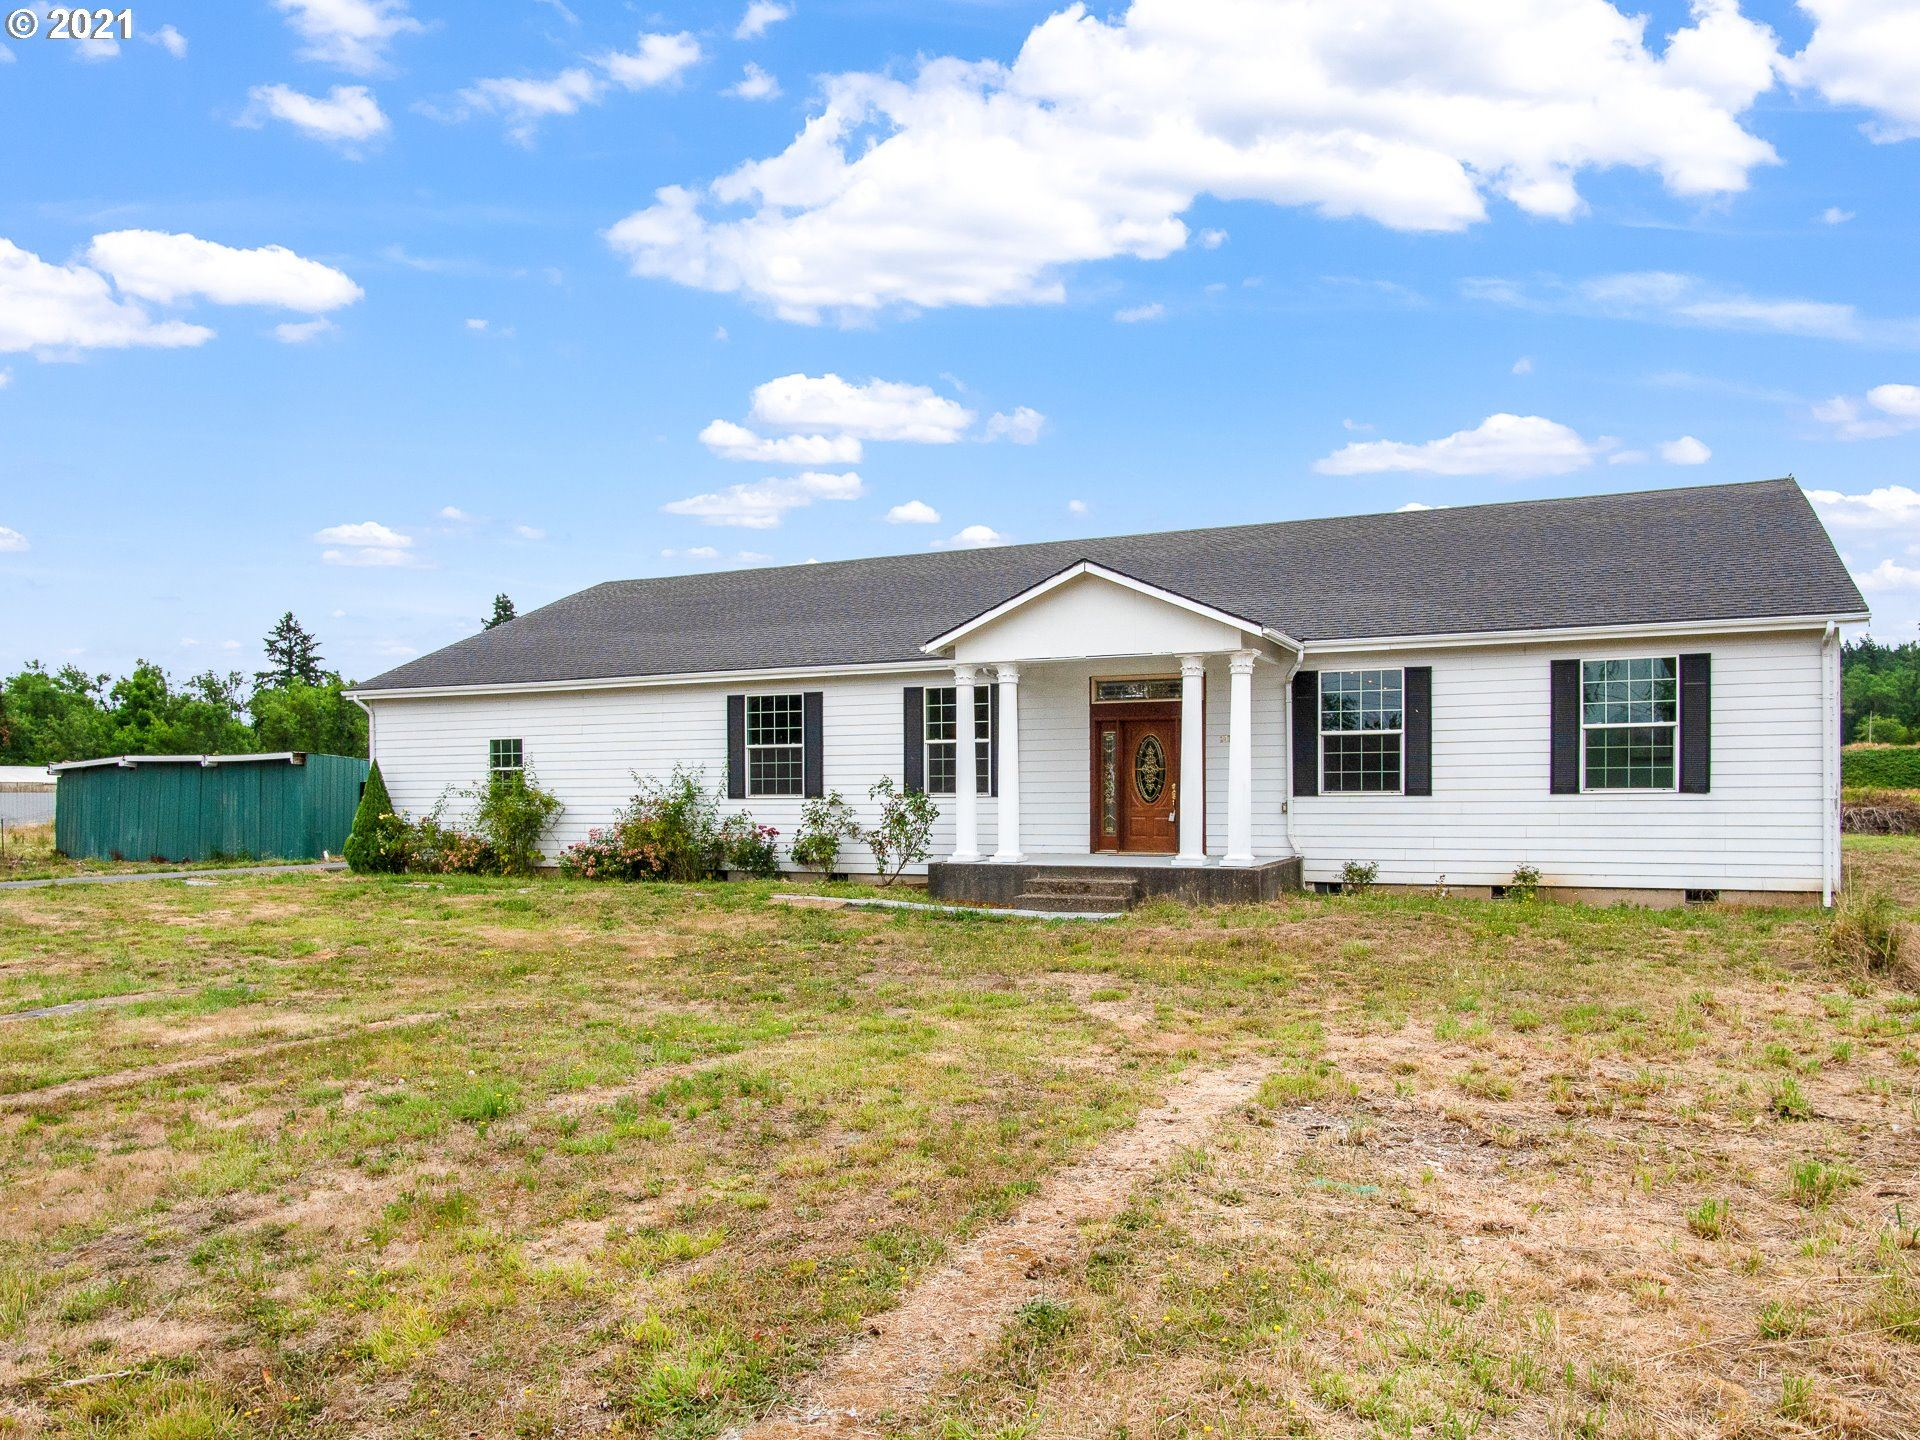 Photo of 24750 S BLUNDELL RD, Canby, OR 97013 (MLS # 21315768)